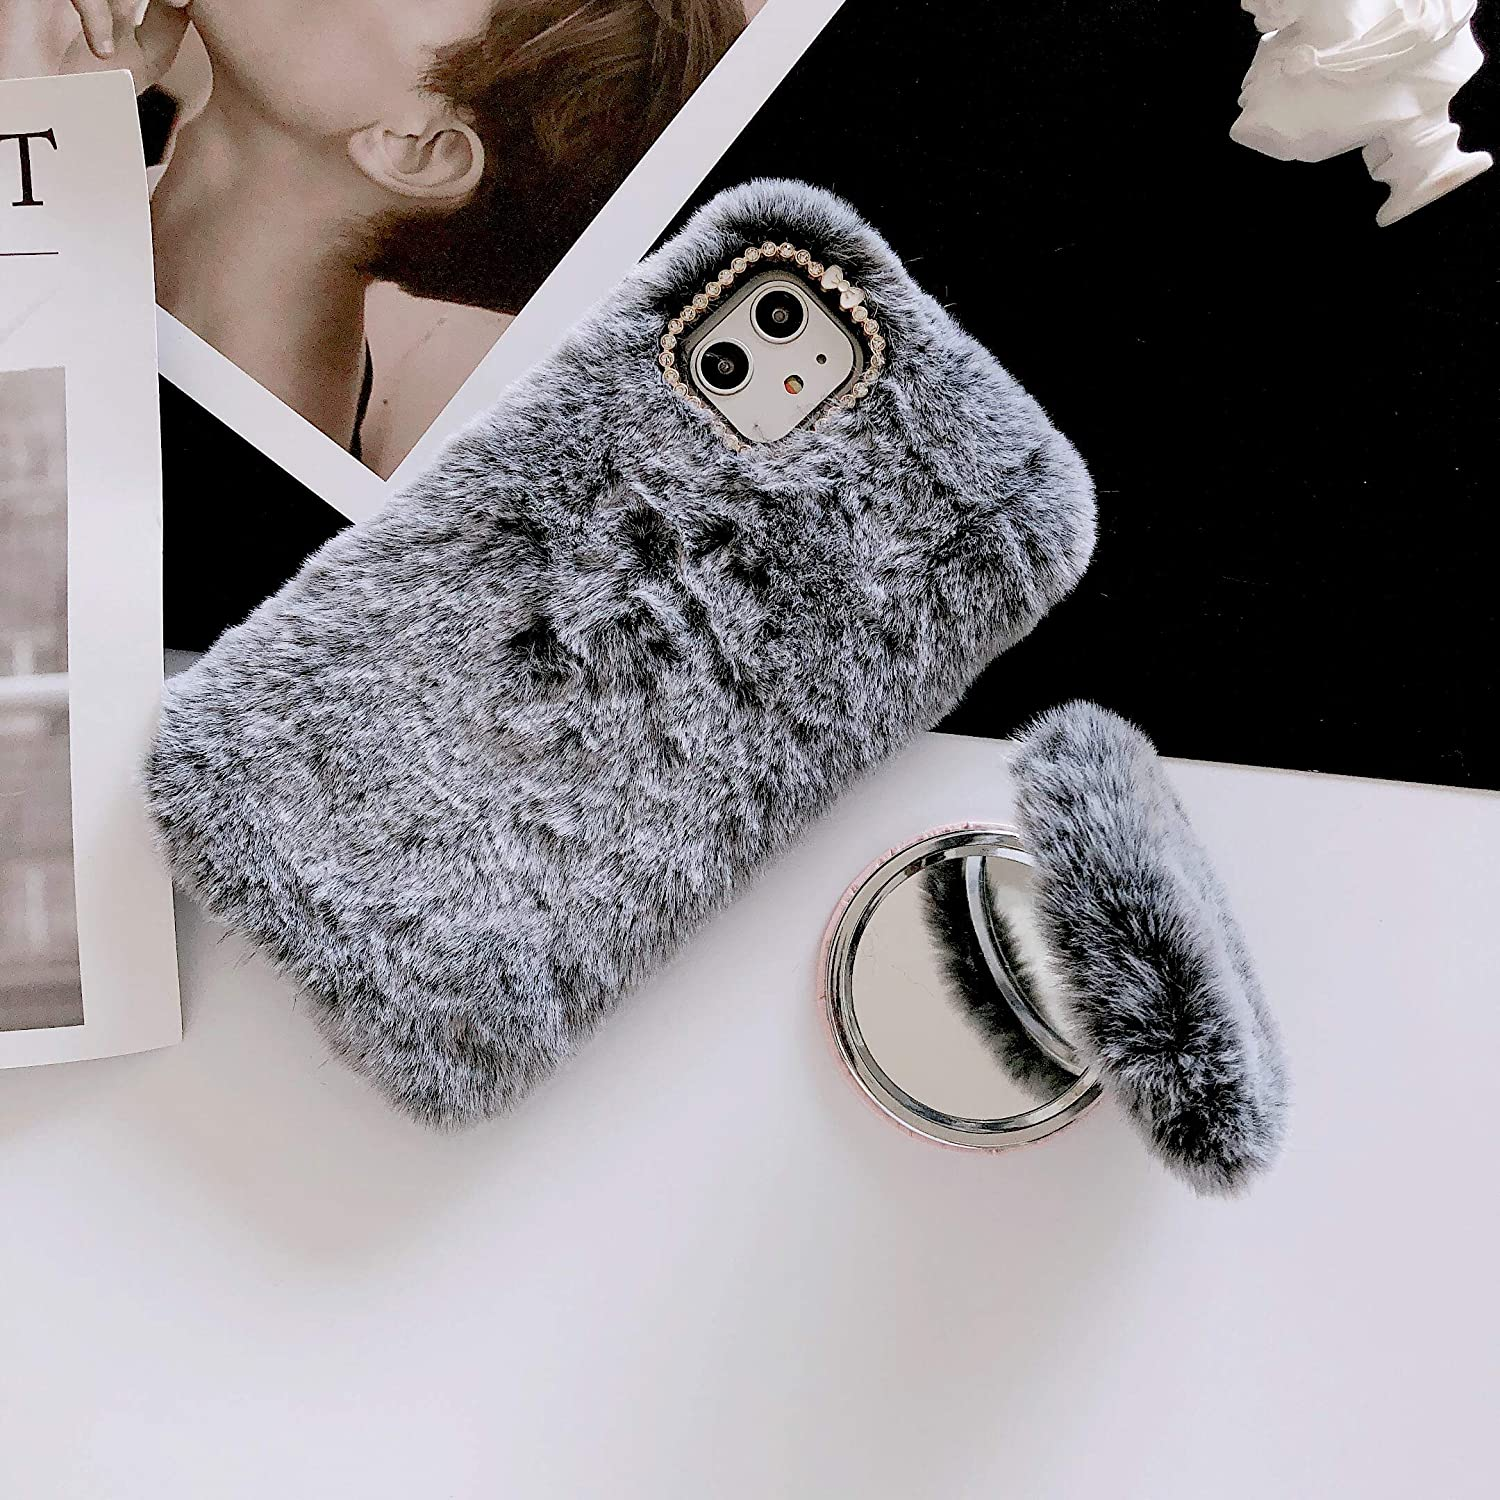 Amazon Com Aweevnye Case Compatible With Iphone 11 Pro Max Cute Girly Furry Case With Detachable Mirror Bling Crystal Soft Fluffy Shockproof Protective Phone Cover 6 5 Inch Release In 2019 Deep Gray